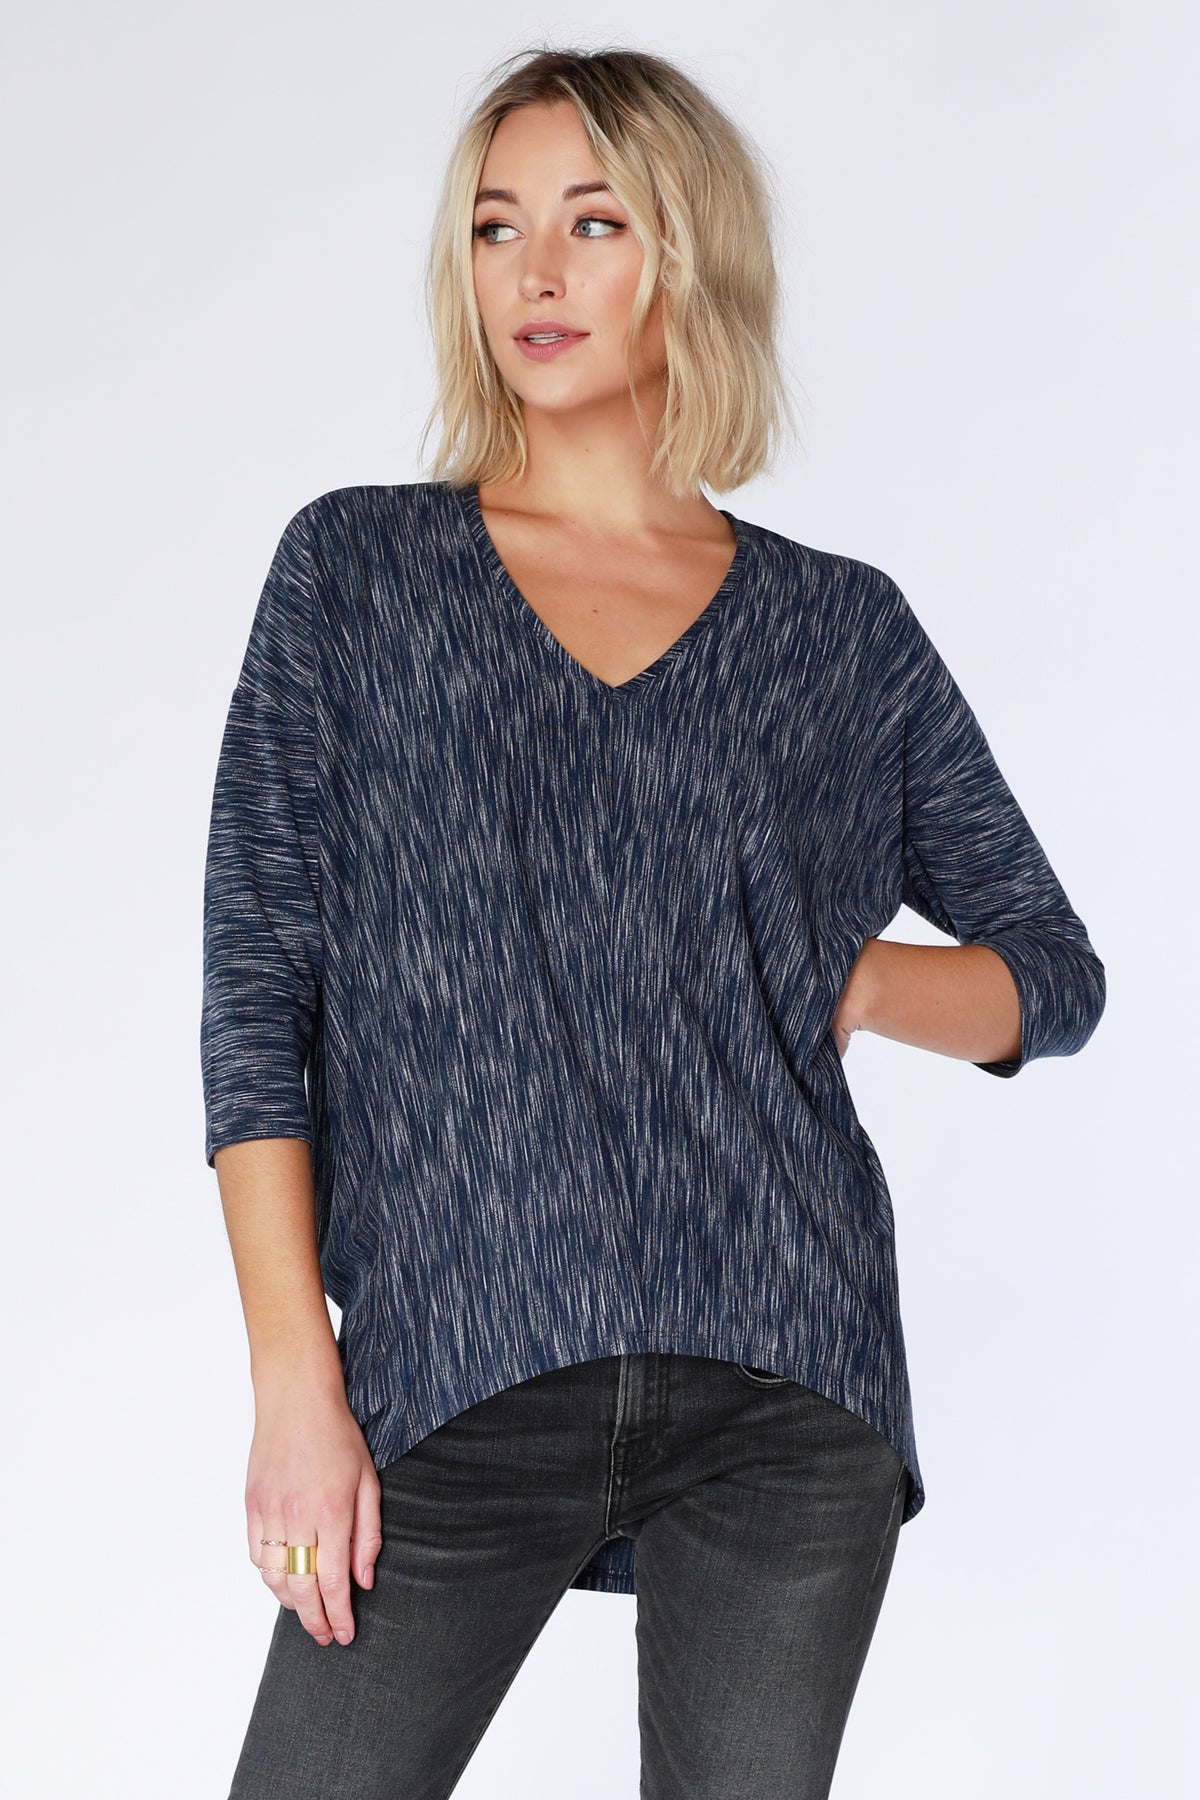 ¾ Sleeve High Low V-Neck - bobi Los Angeles